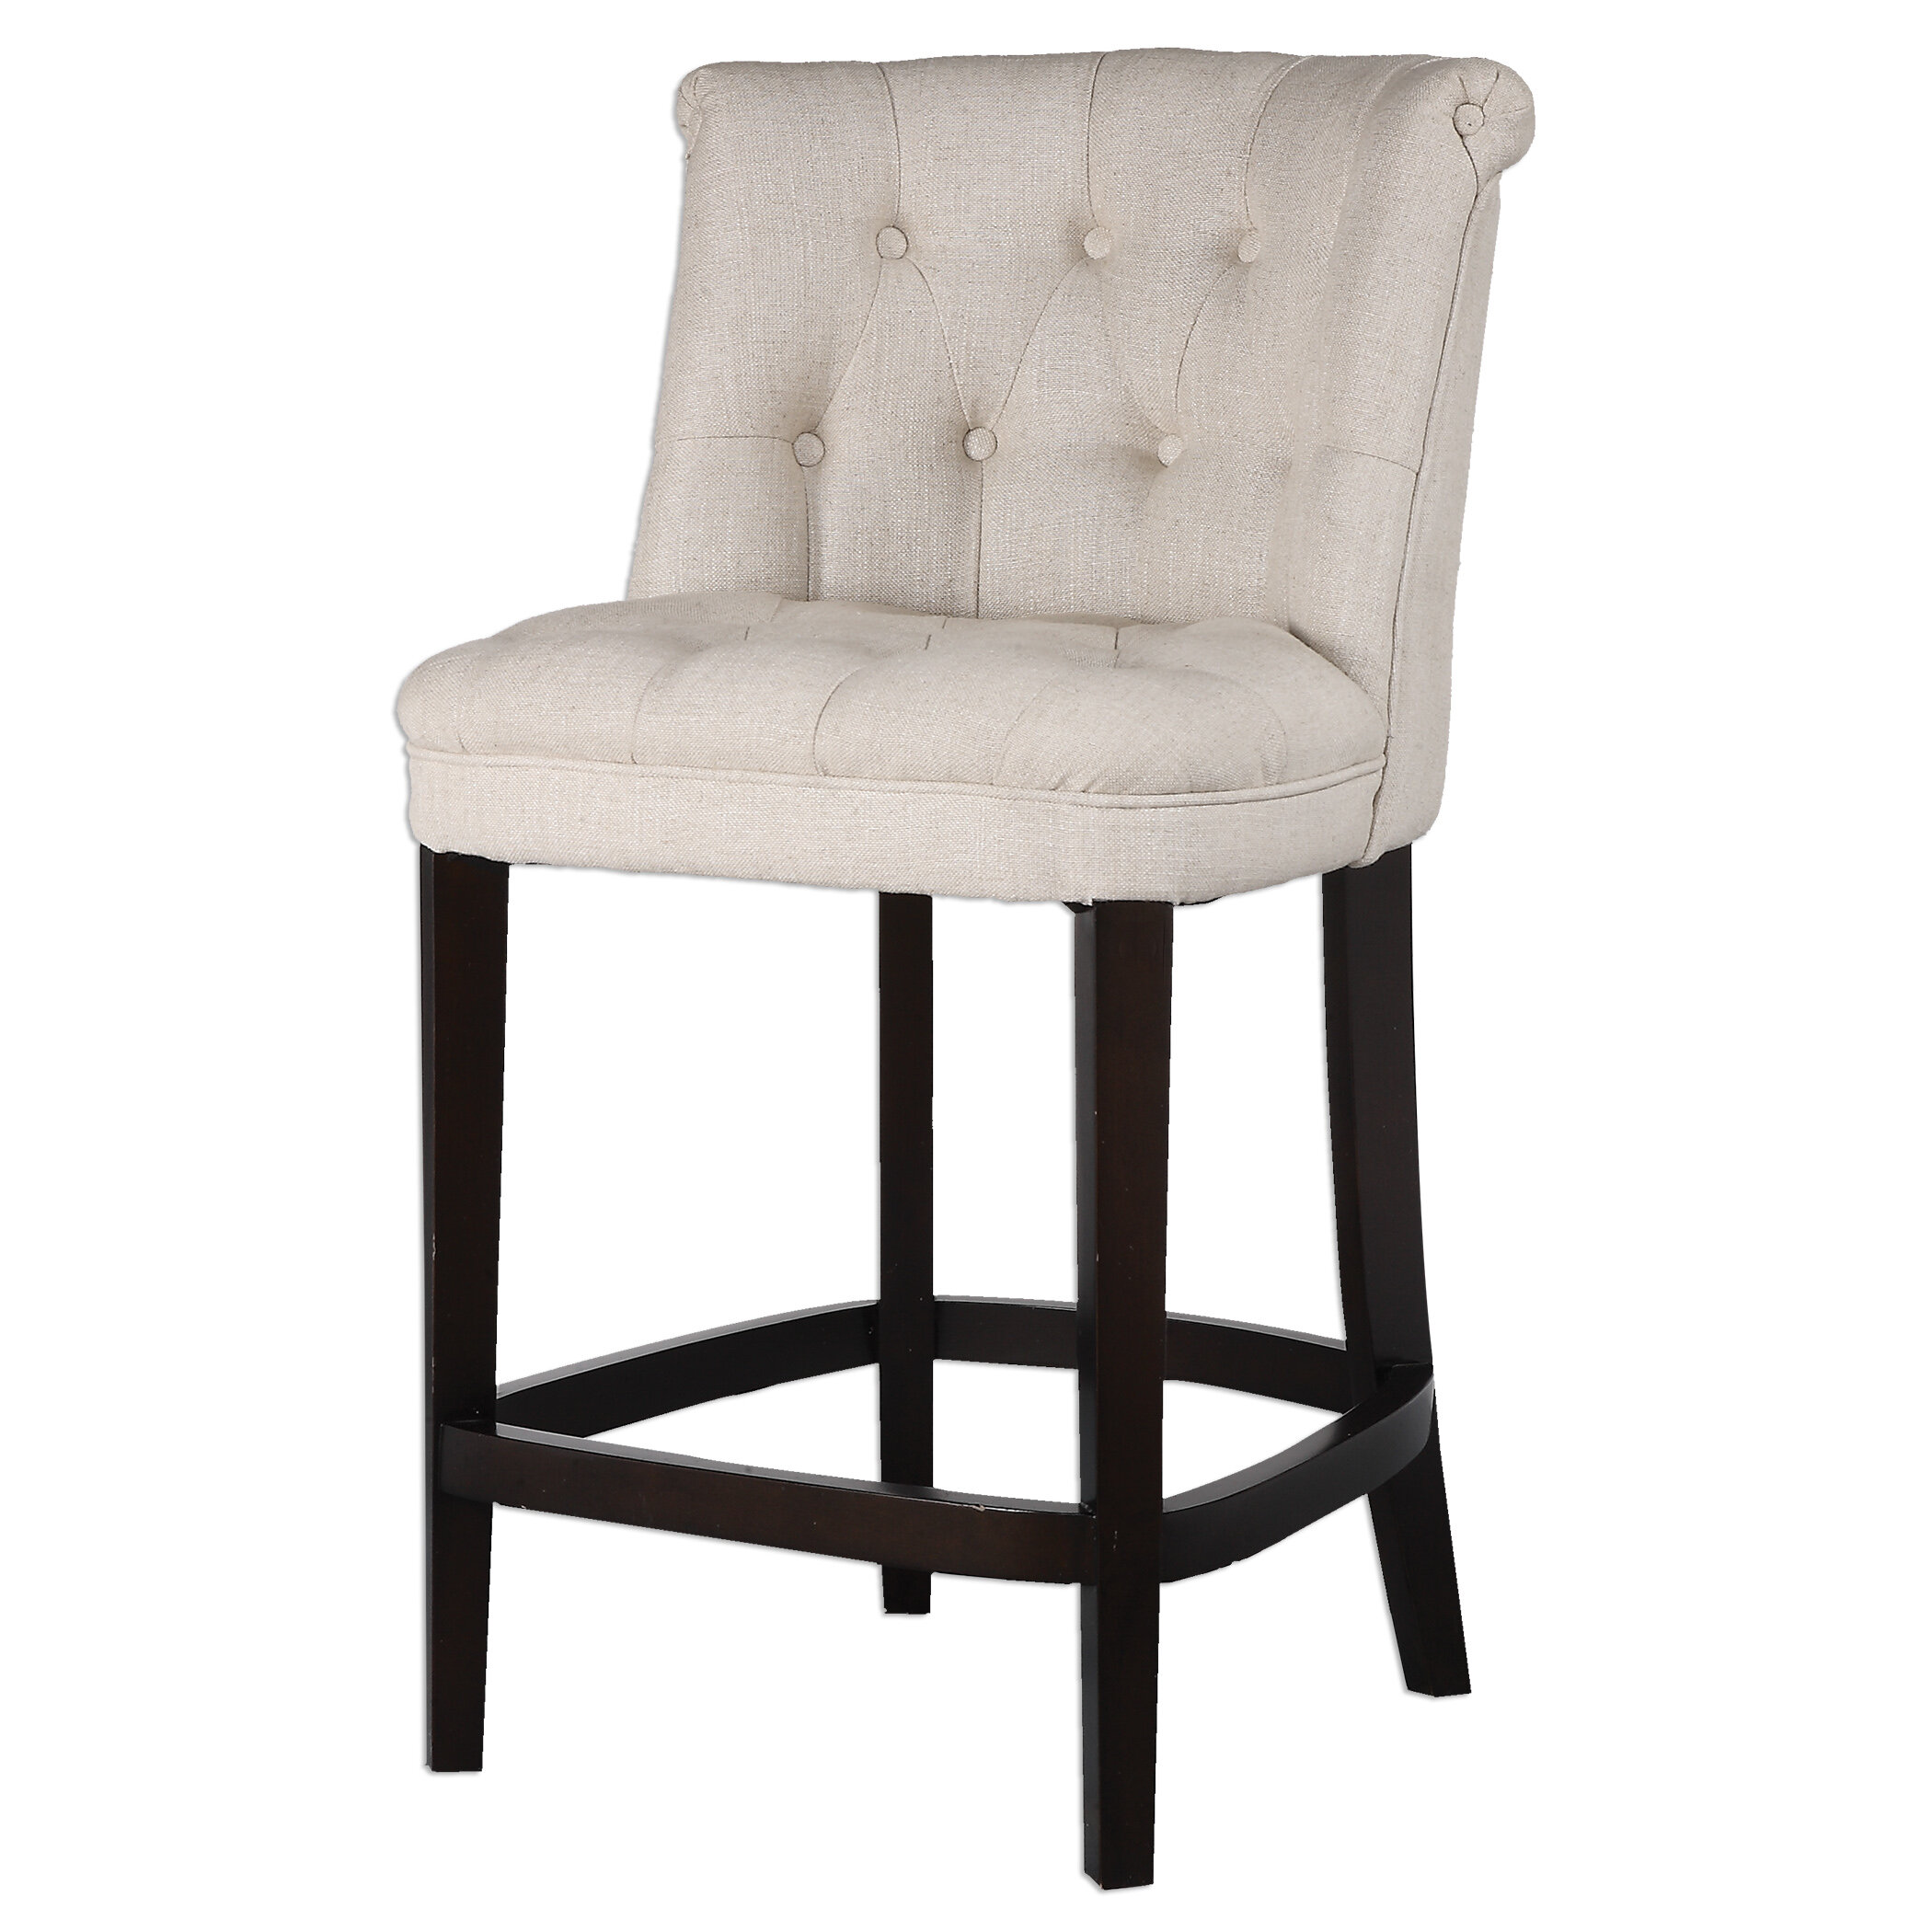 Fantastic Braeswood Tufted Counter Stool Dailytribune Chair Design For Home Dailytribuneorg